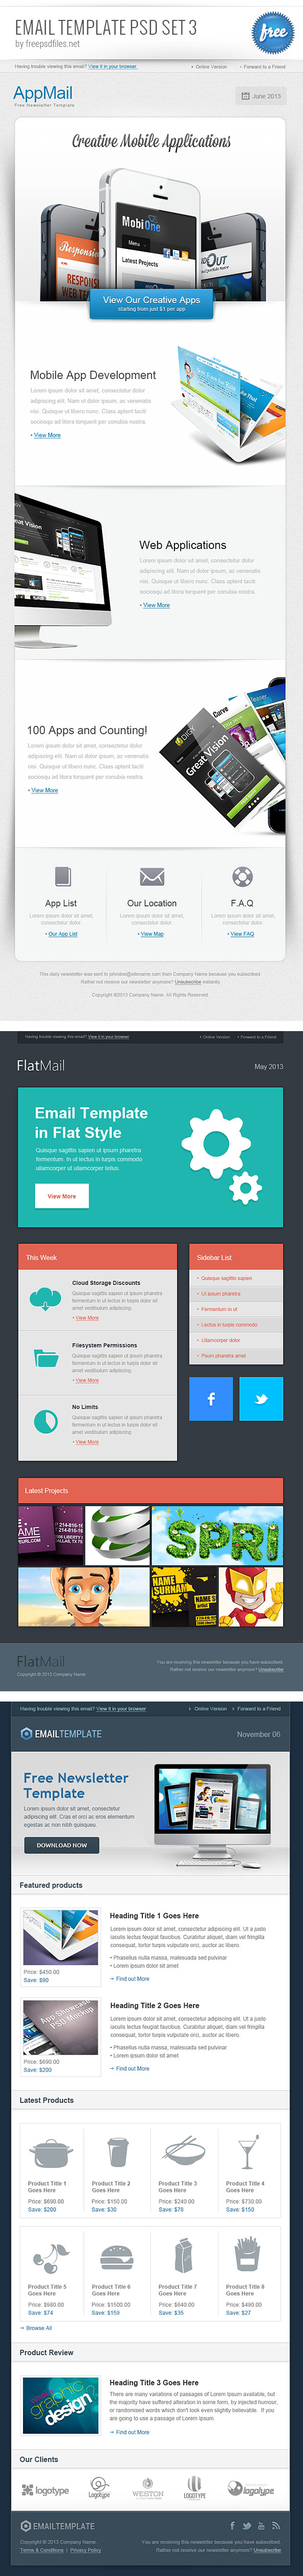 Email Template Psd Set   Free Psd Files